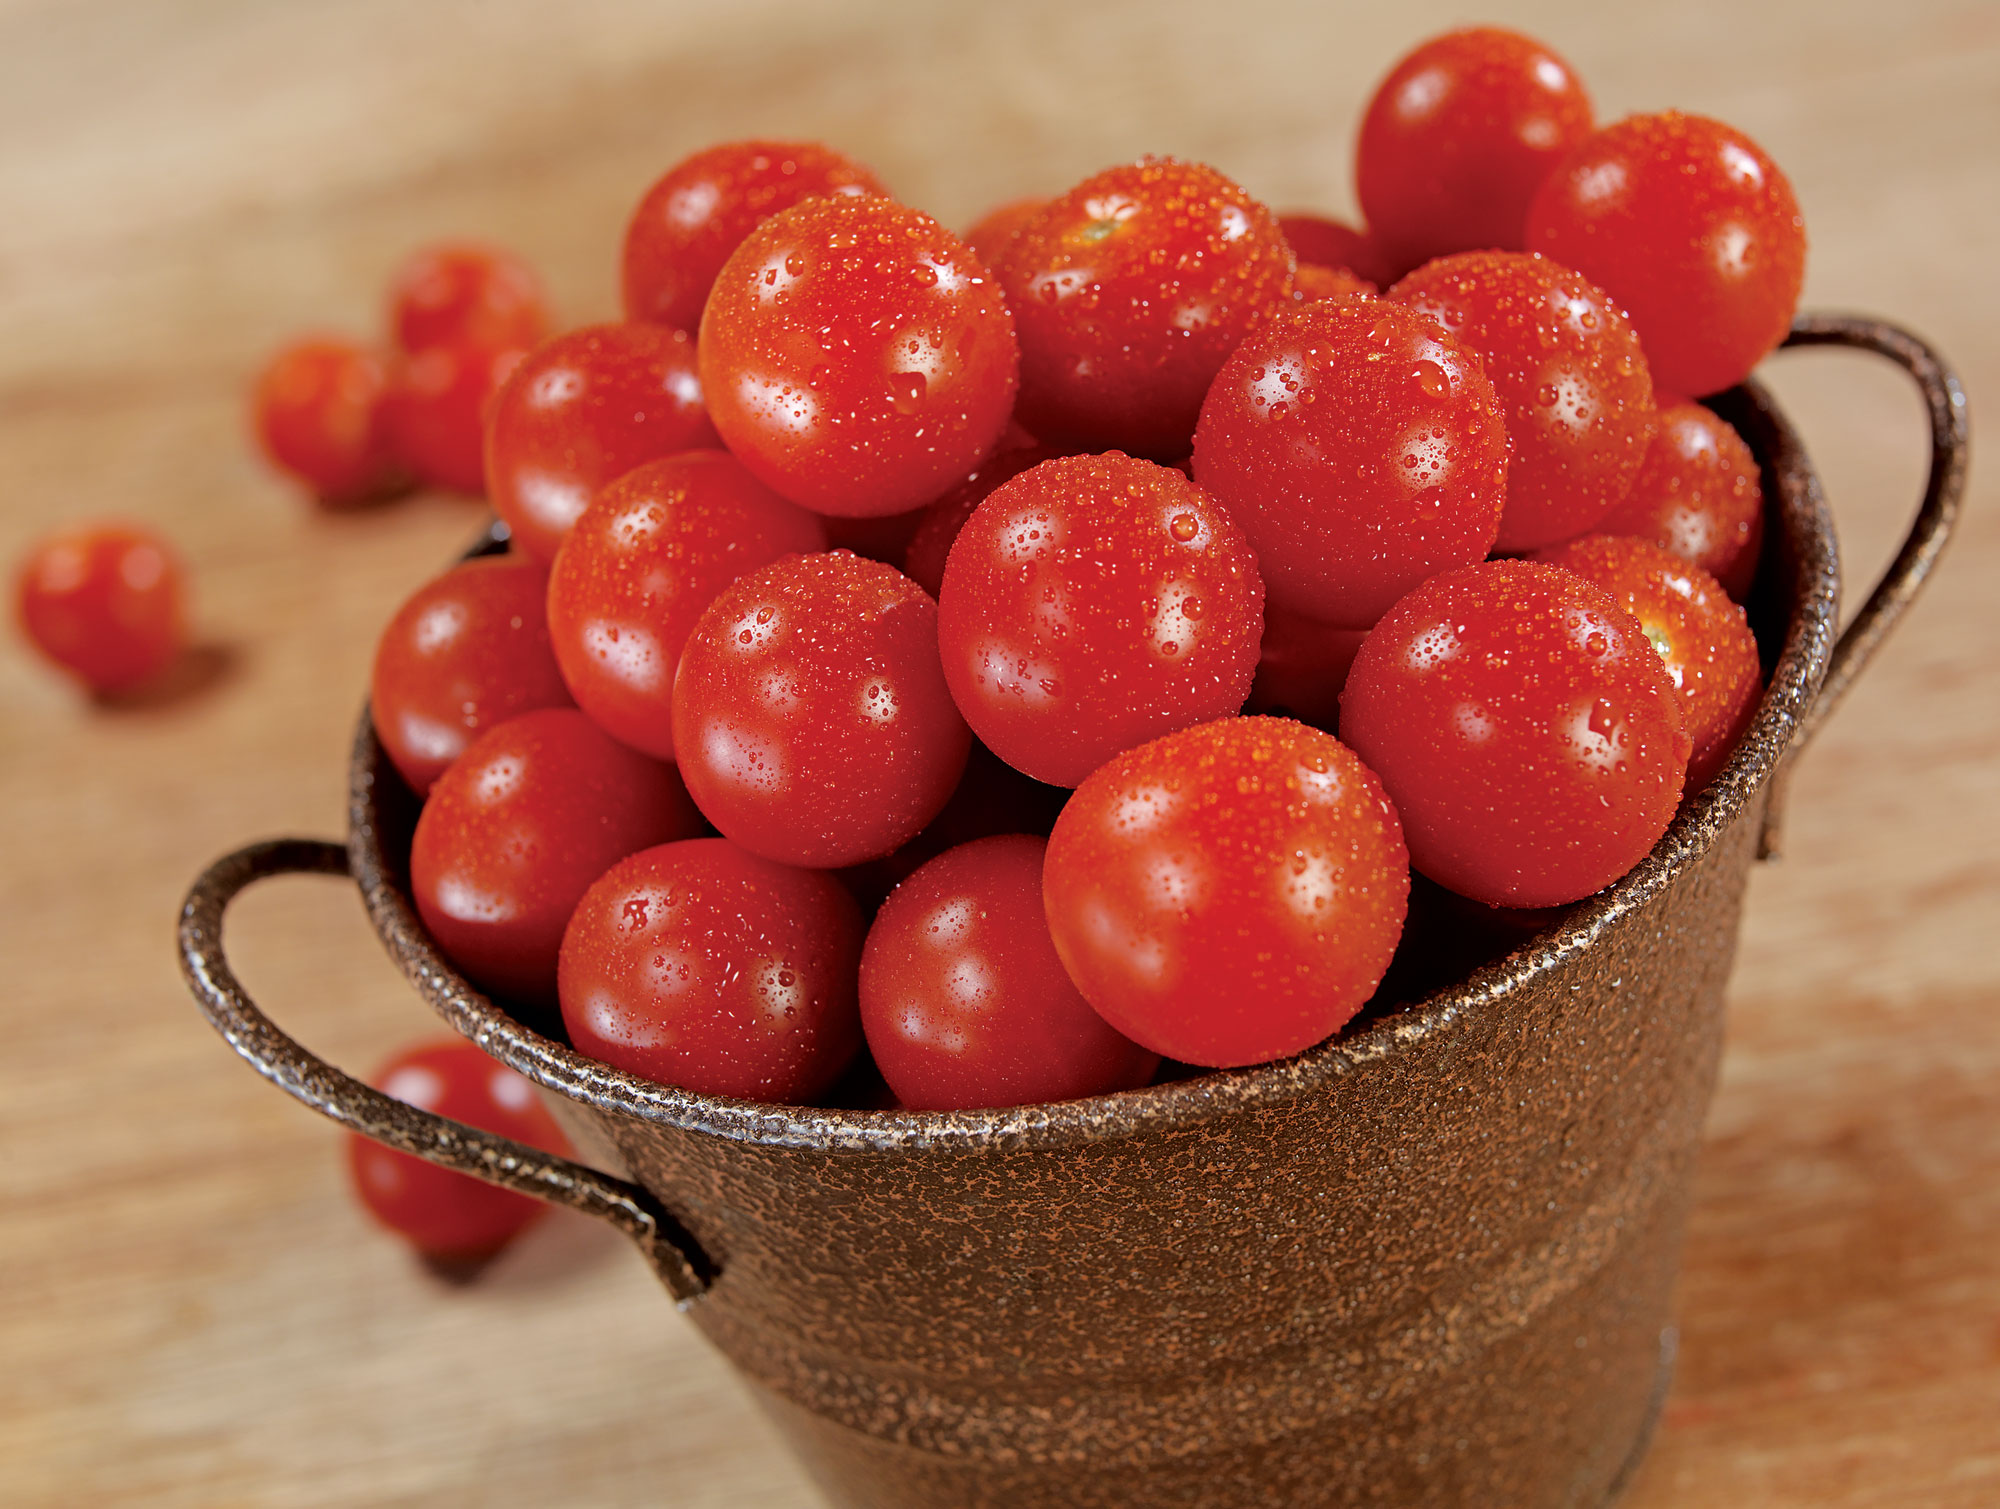 TomatoCherry001.jpg